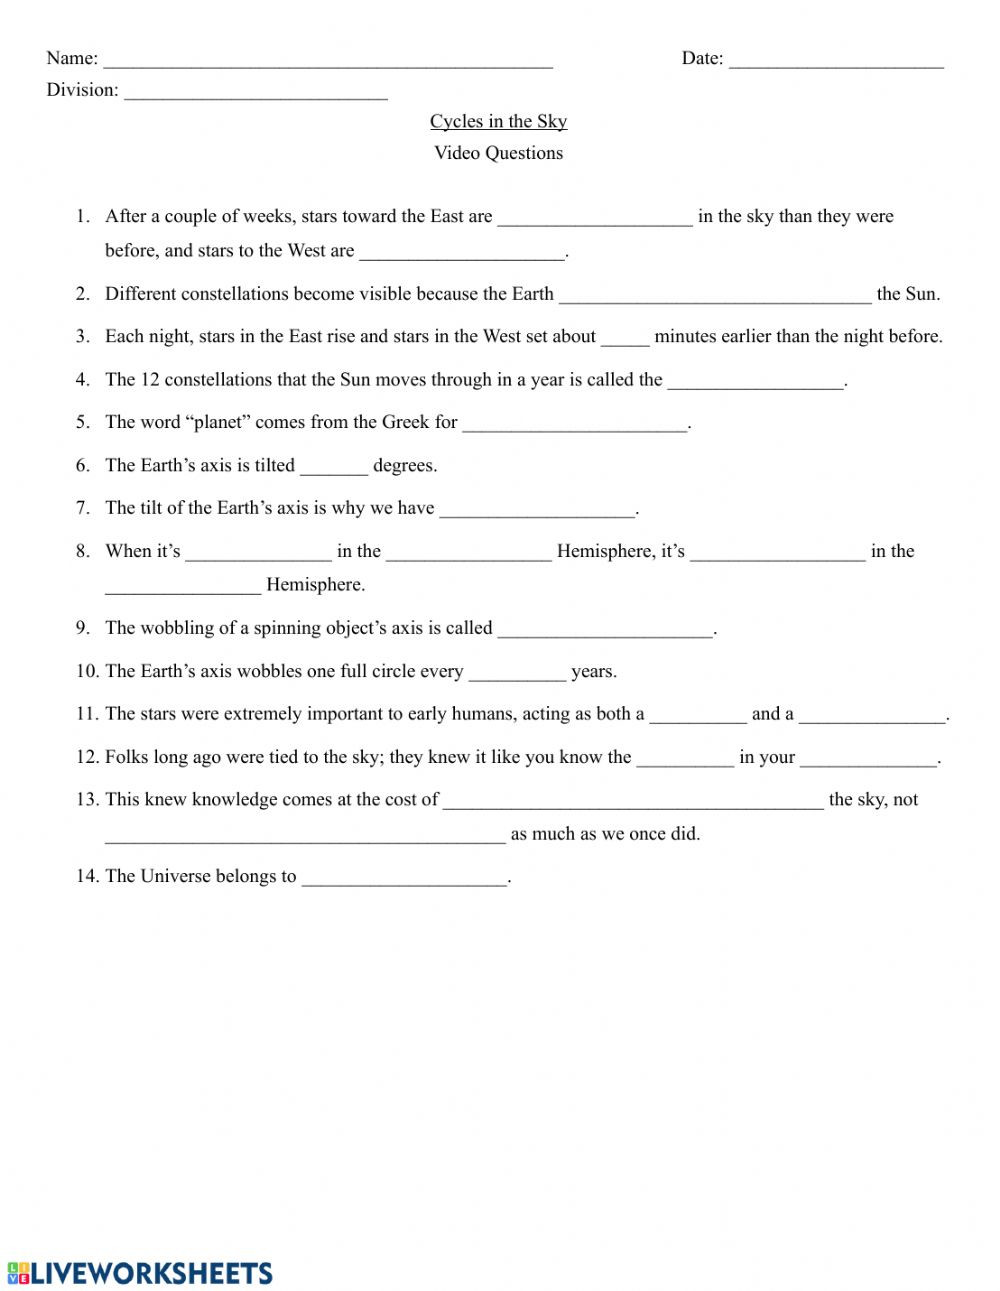 Astronomy Worksheets High School Pdf Crash Course astronomy Cycles In the Sky Worksheet